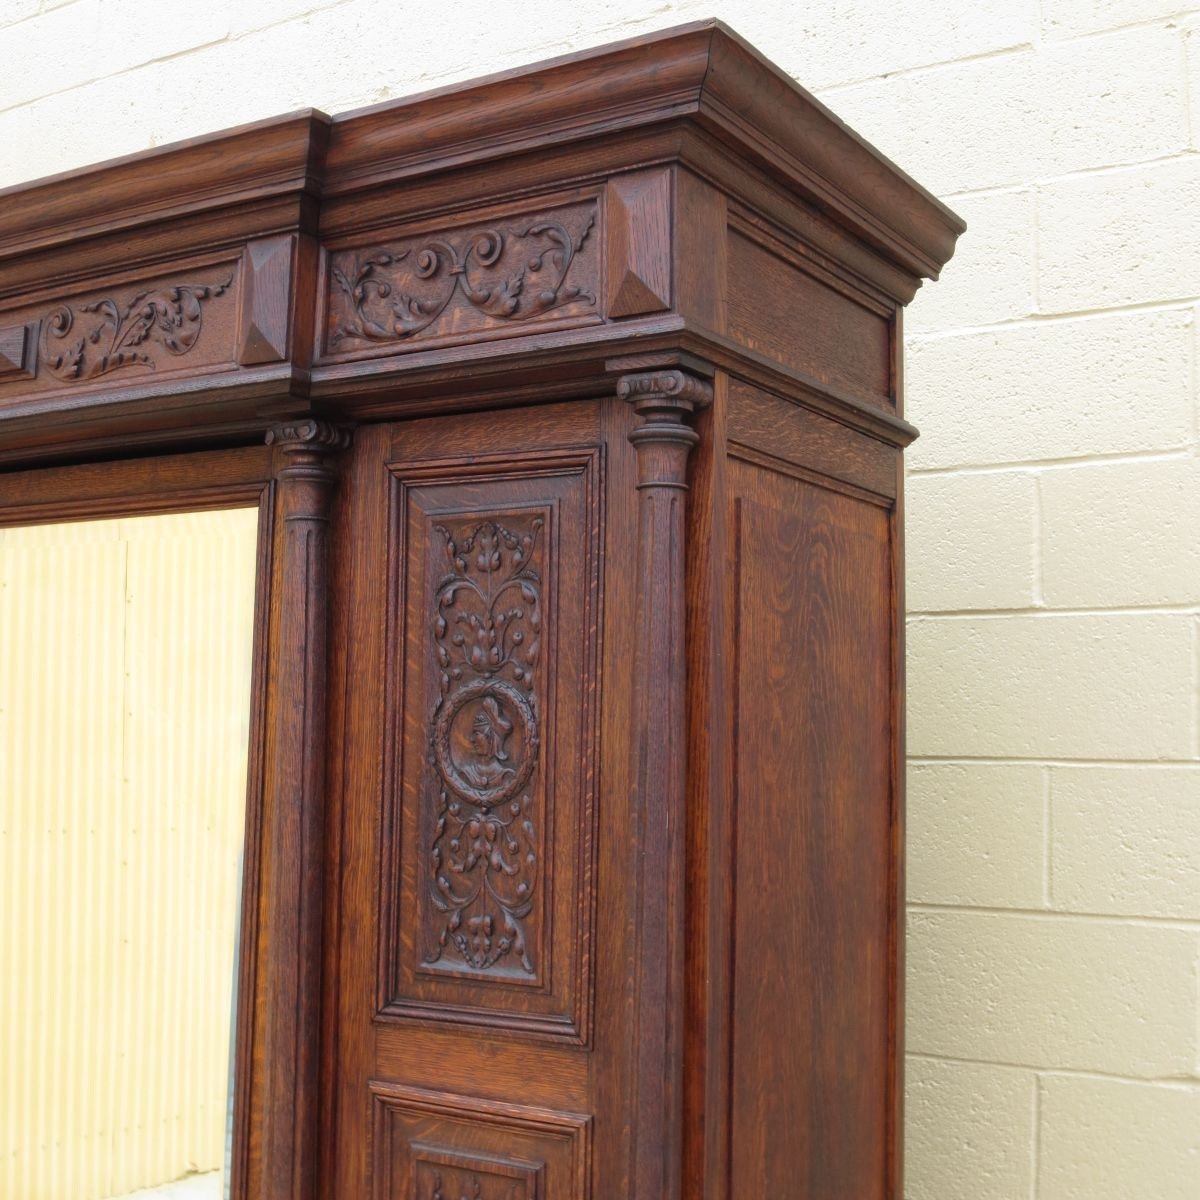 armoire furniture antique. Shop Armoires \u0026 Wardrobes At Chairish, The Design Lover\u0027s Marketplace For Best Vintage And Used Furniture, Decor Art. Armoire Furniture Antique